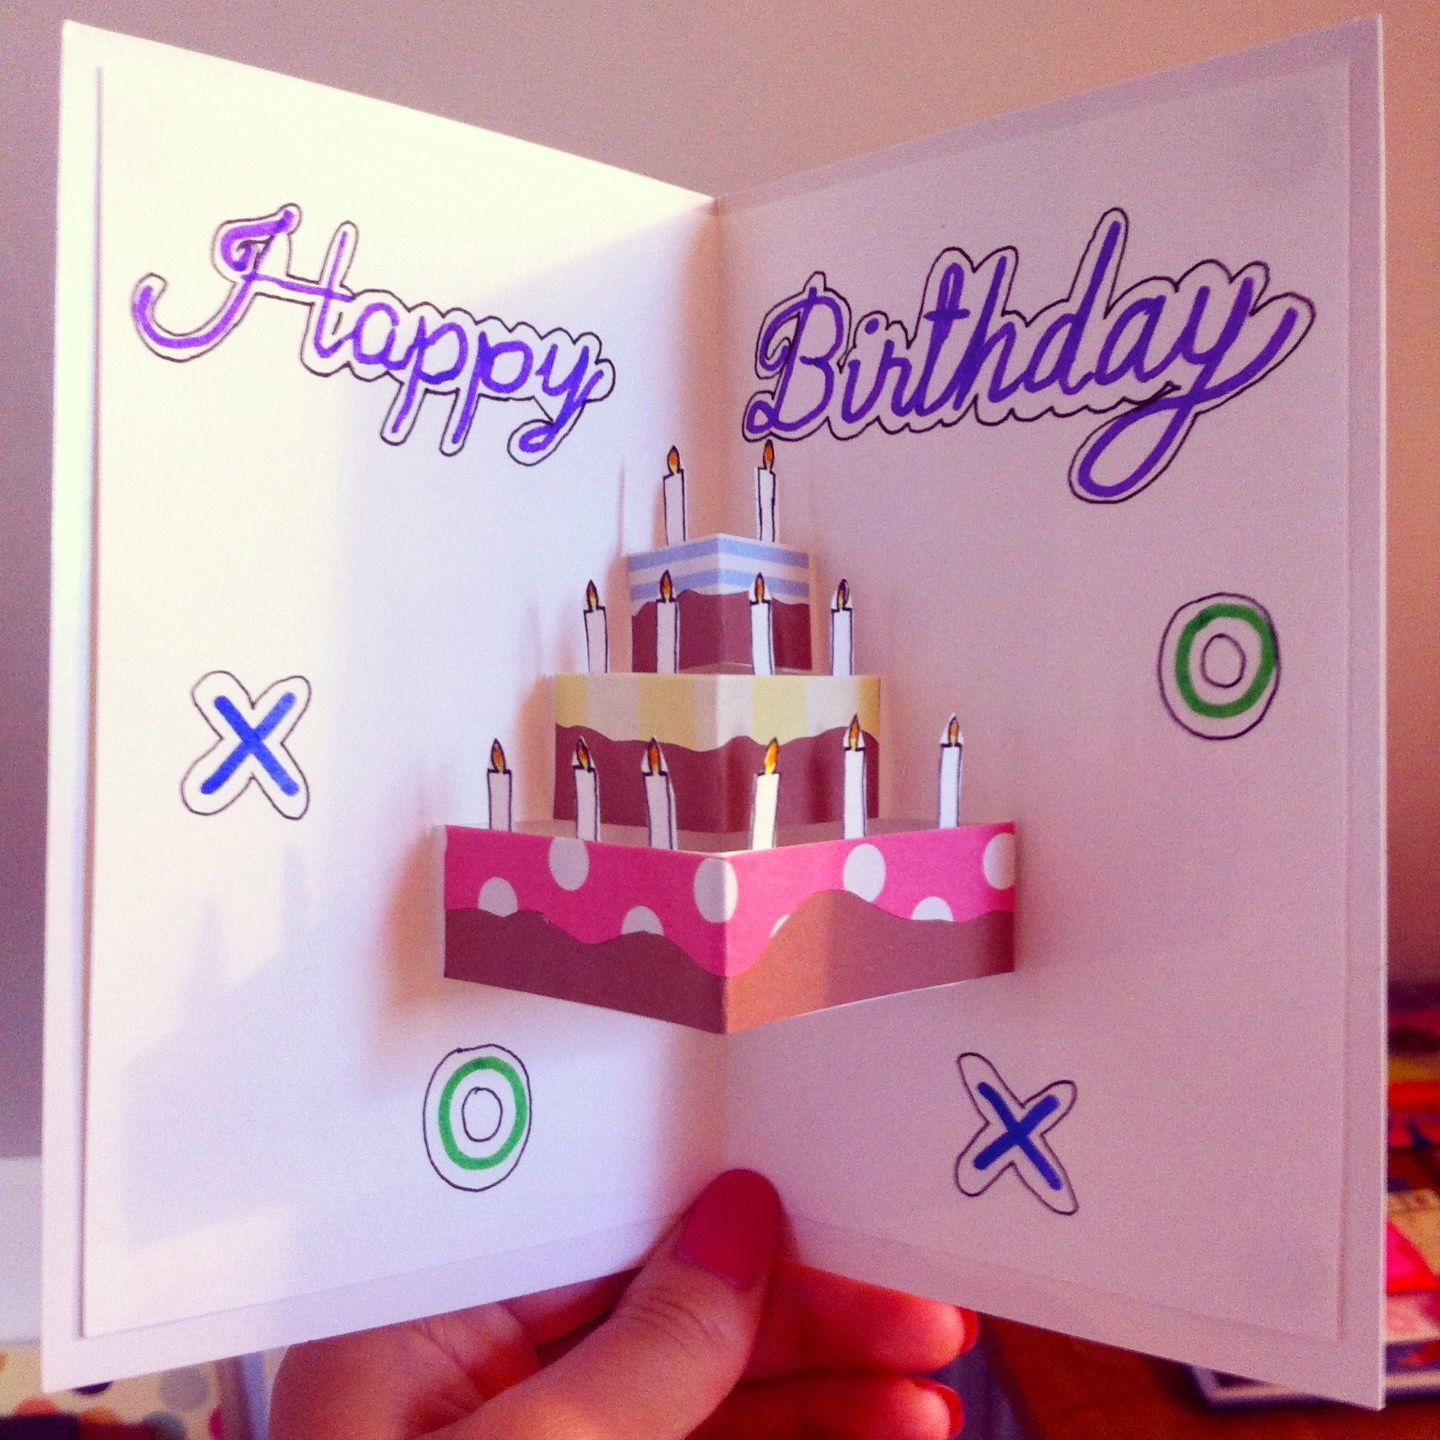 pop-up birthday card for sister